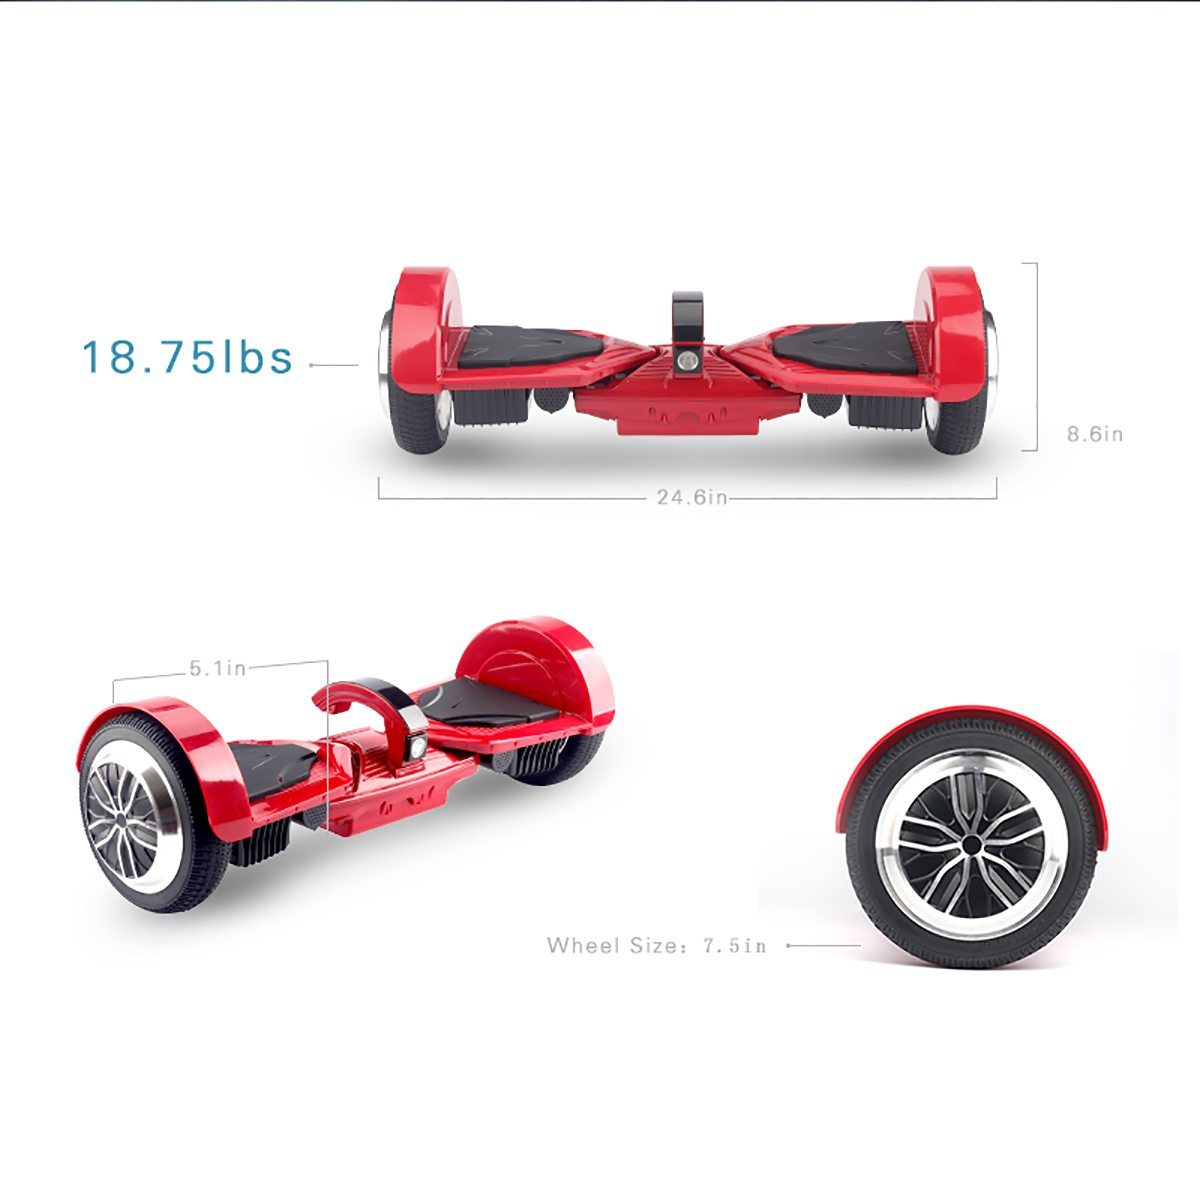 Koowheel Patent Hoverboard 7.5 Inch Wheels K5 with Dual Bluetooth and Smart LED Lights